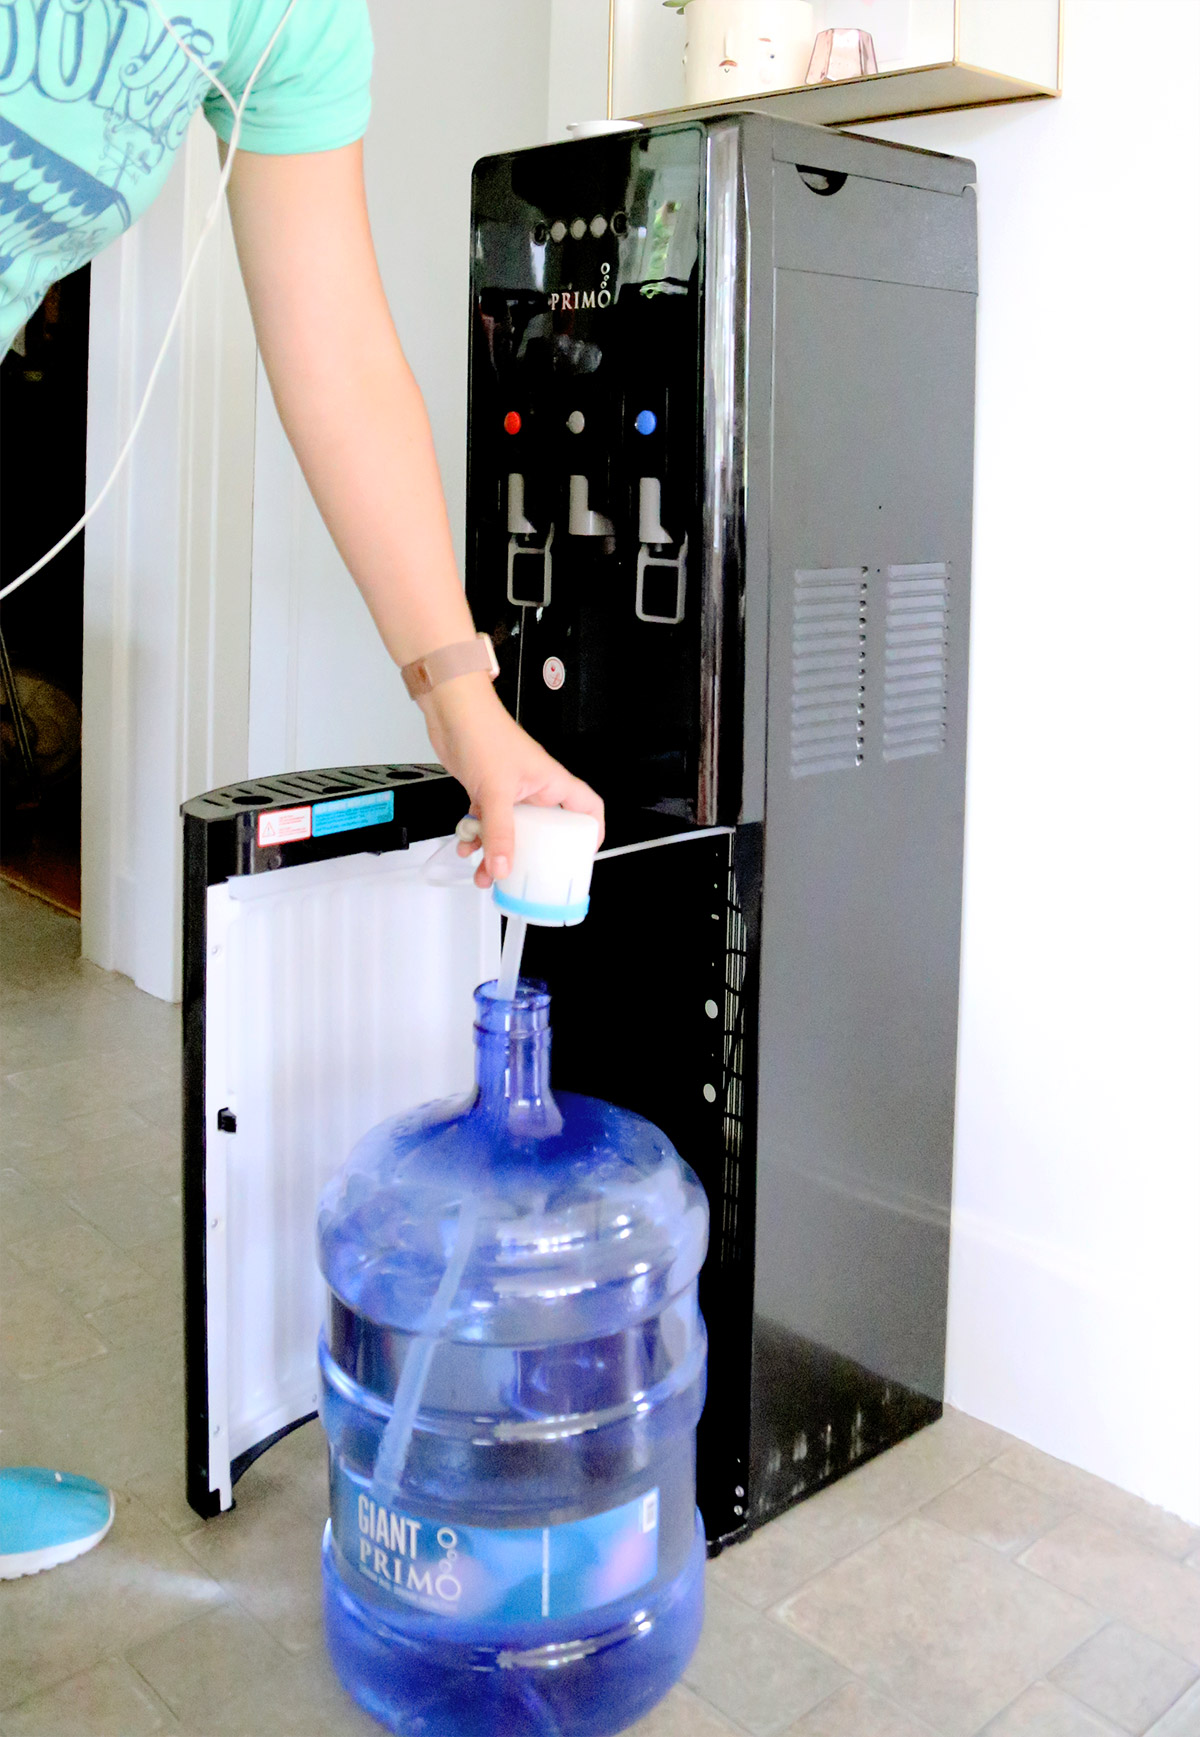 Setting up Primo water dispenser.